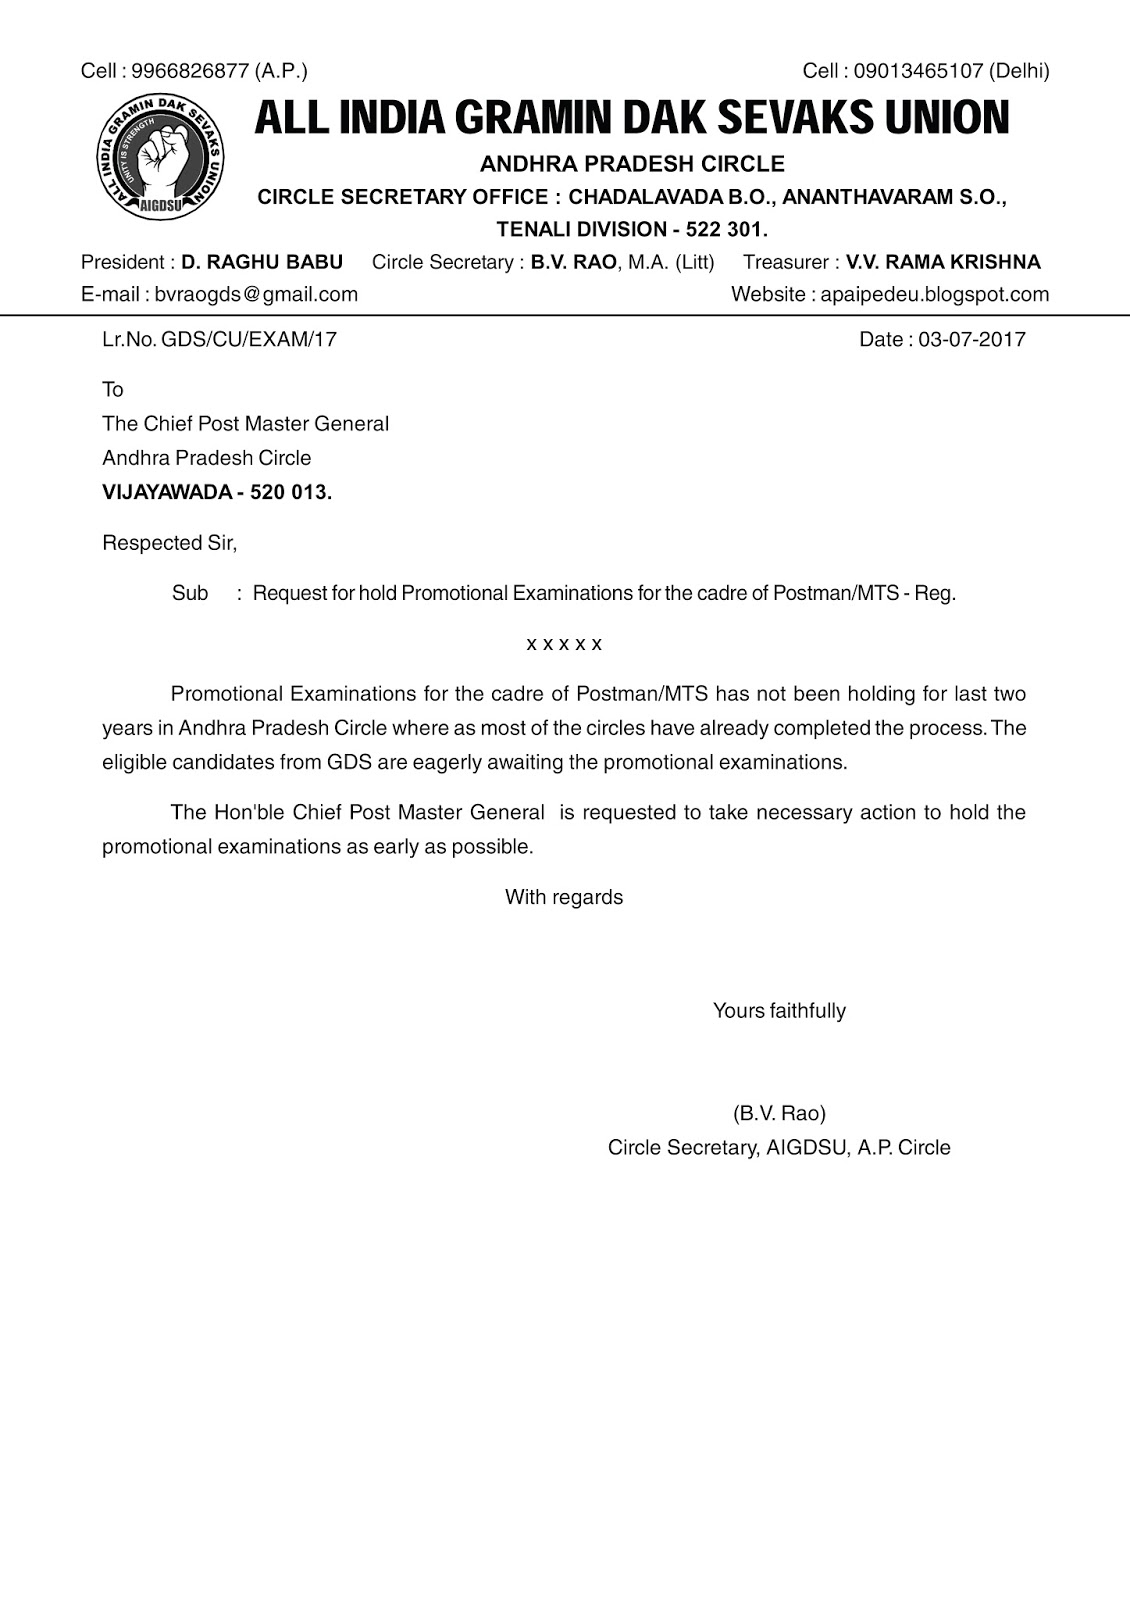 Appointment Letter Consultant] appointment letter format for ...